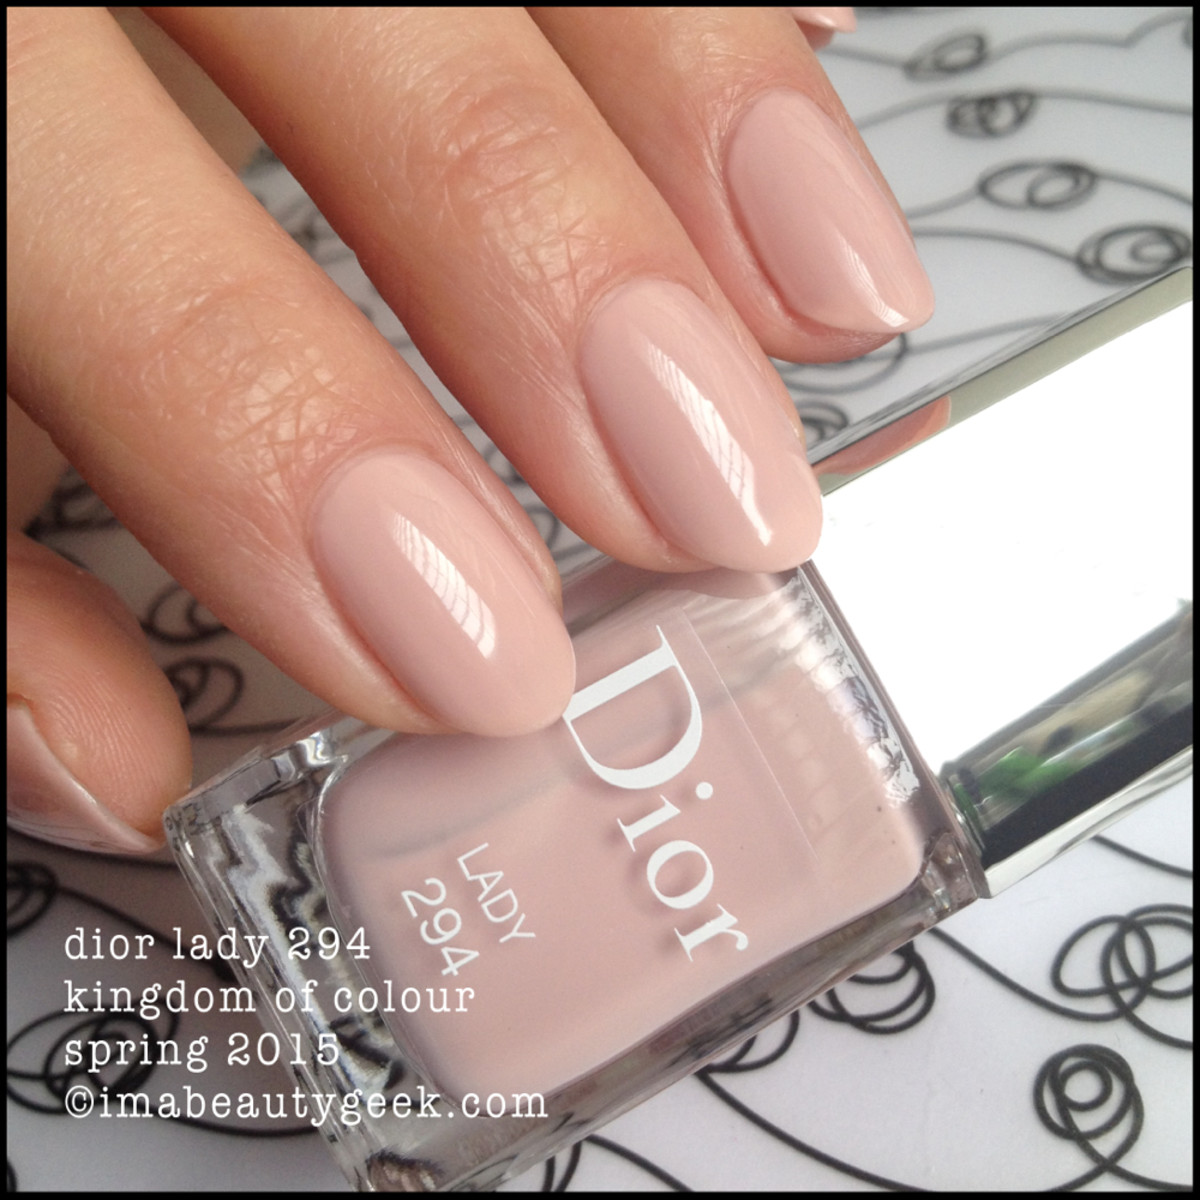 Dior Lady 294 Kingdom of Colour Spring 2015